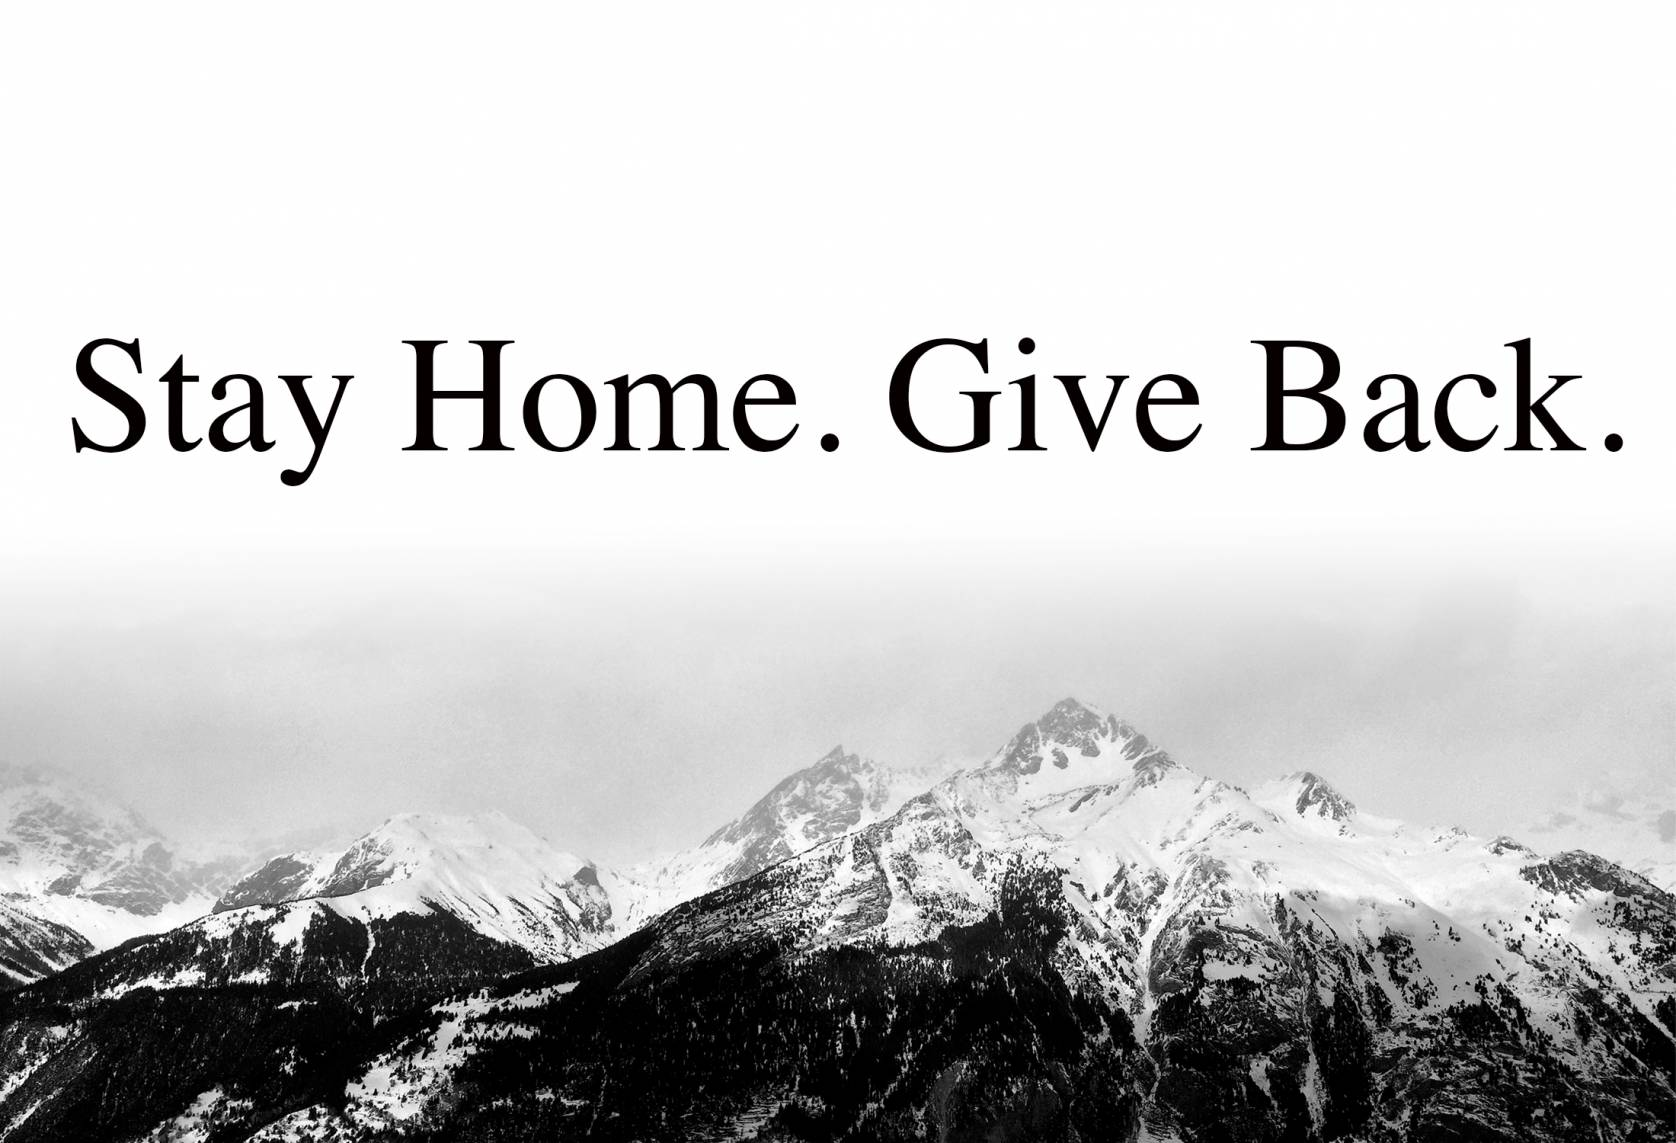 stay home, give back statement